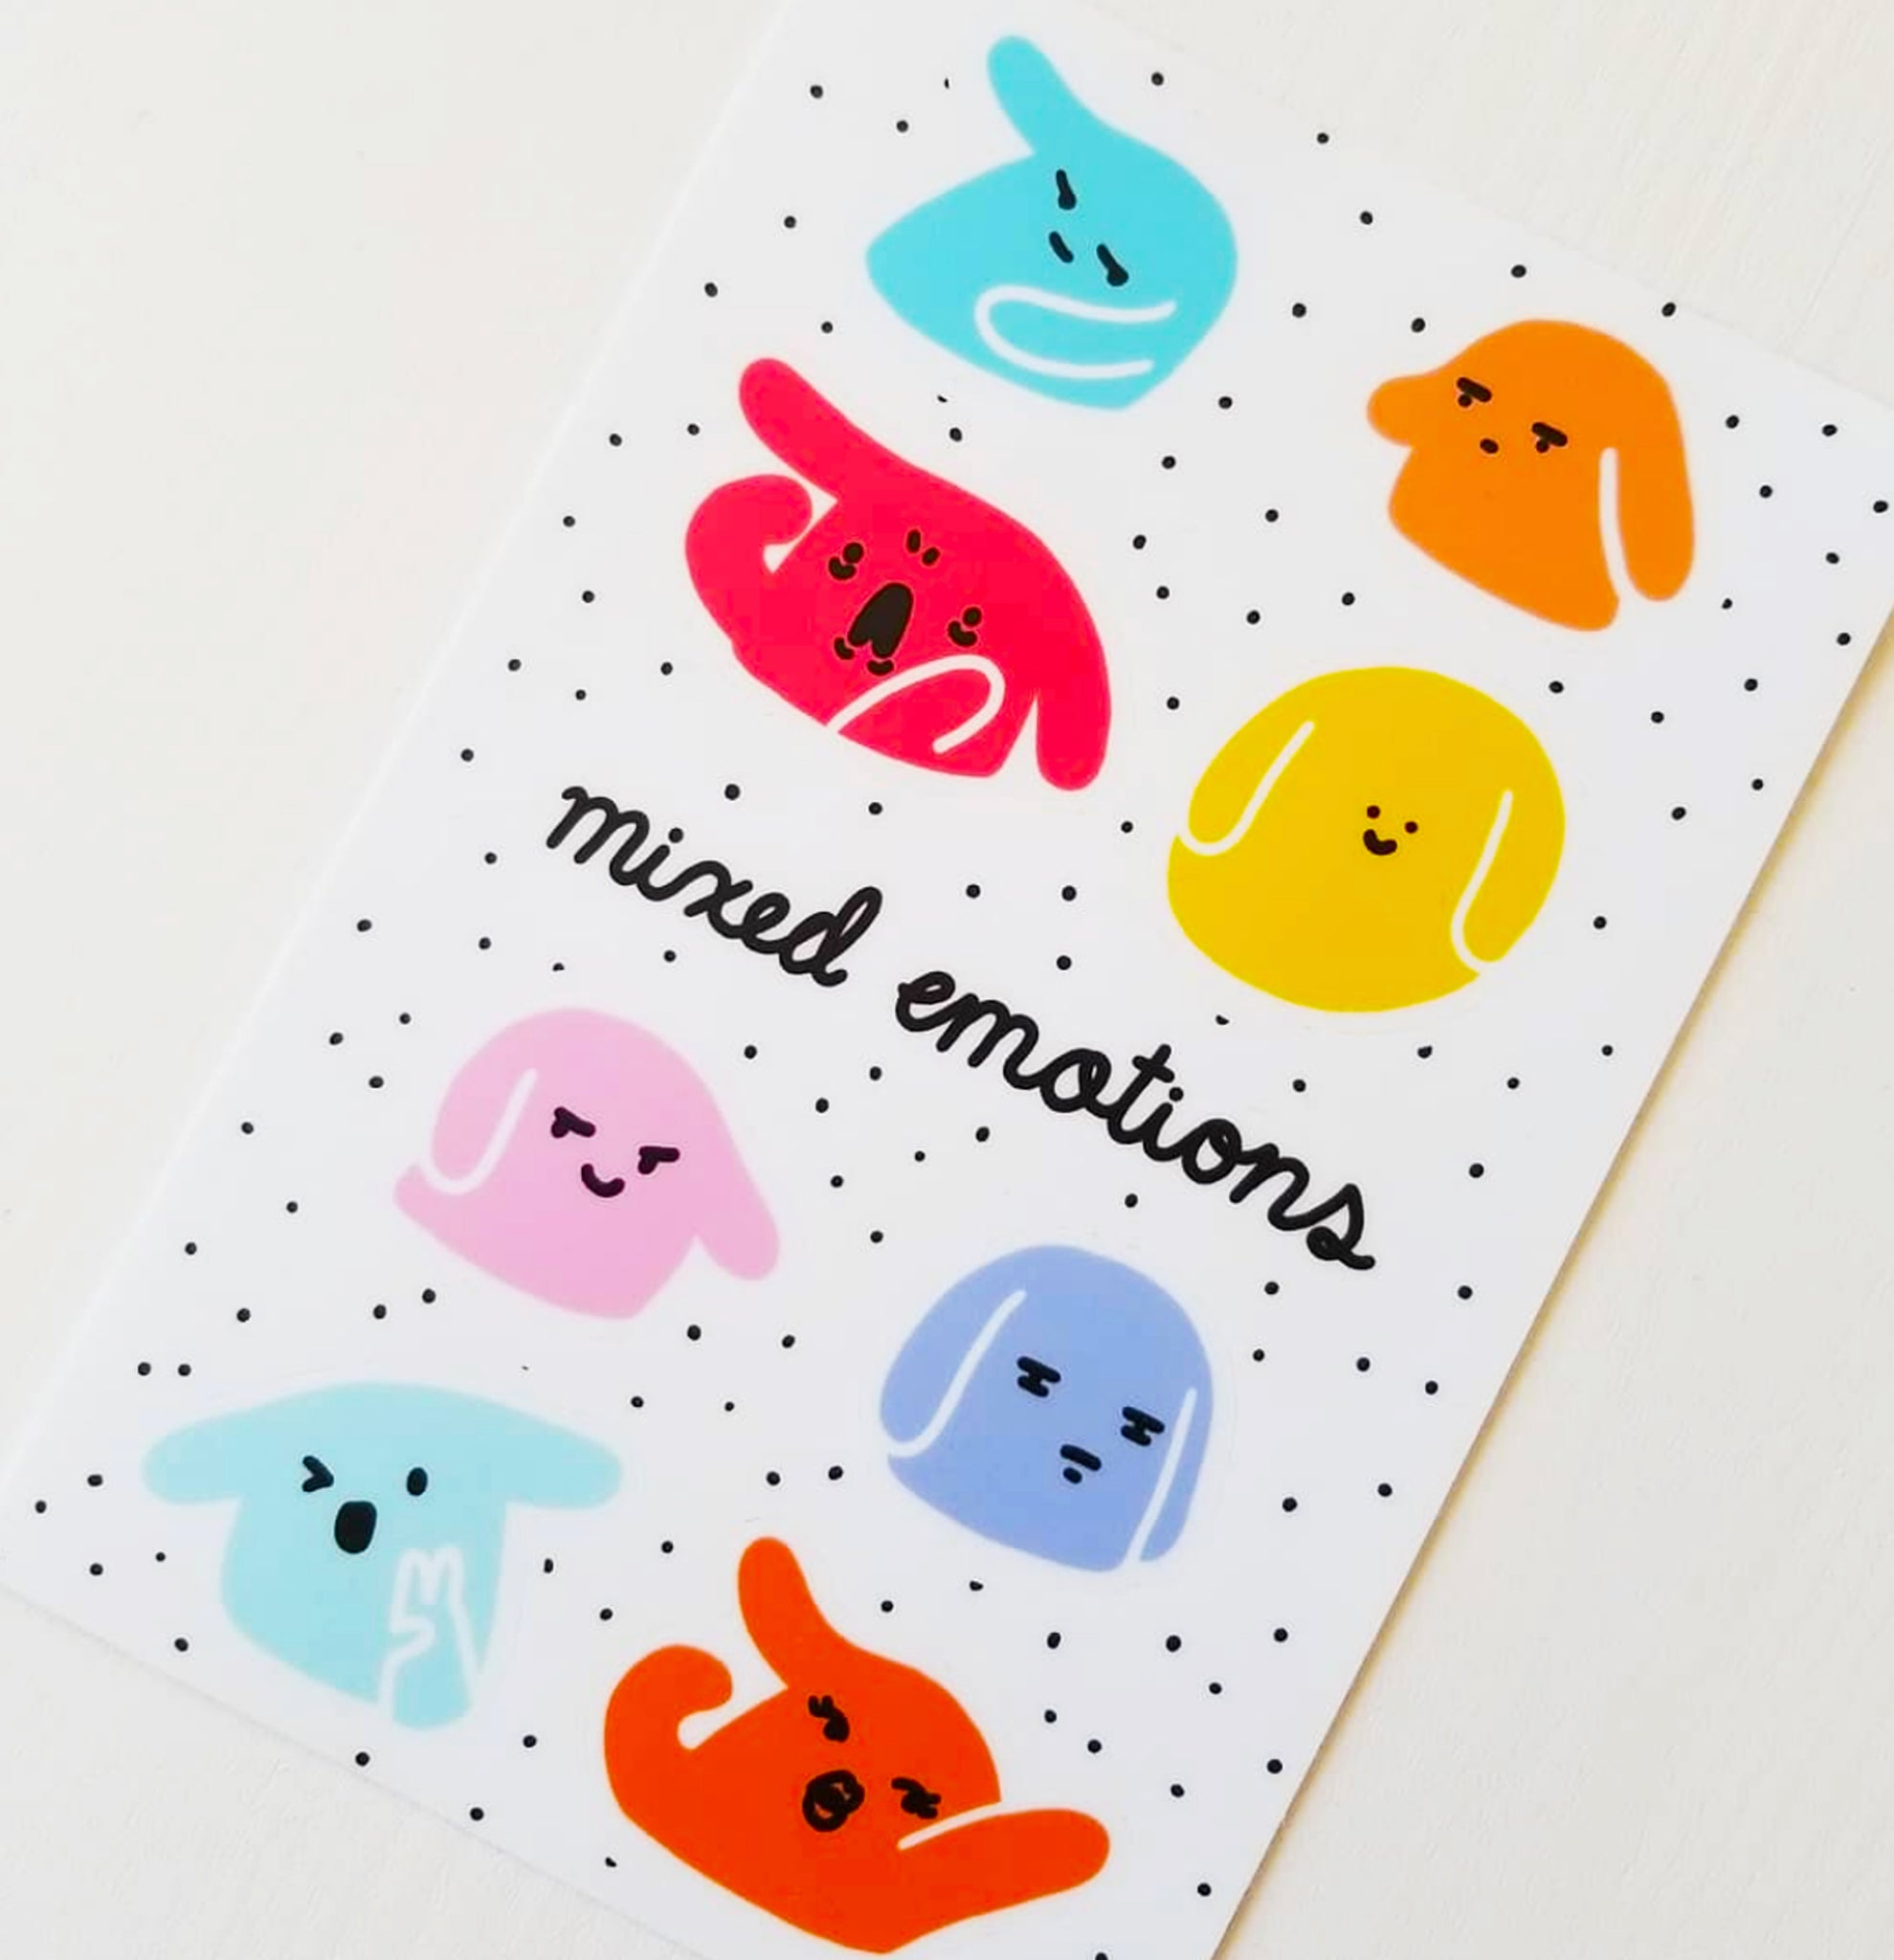 Mixed Emotions Sticker Sheet by Allison and Cam